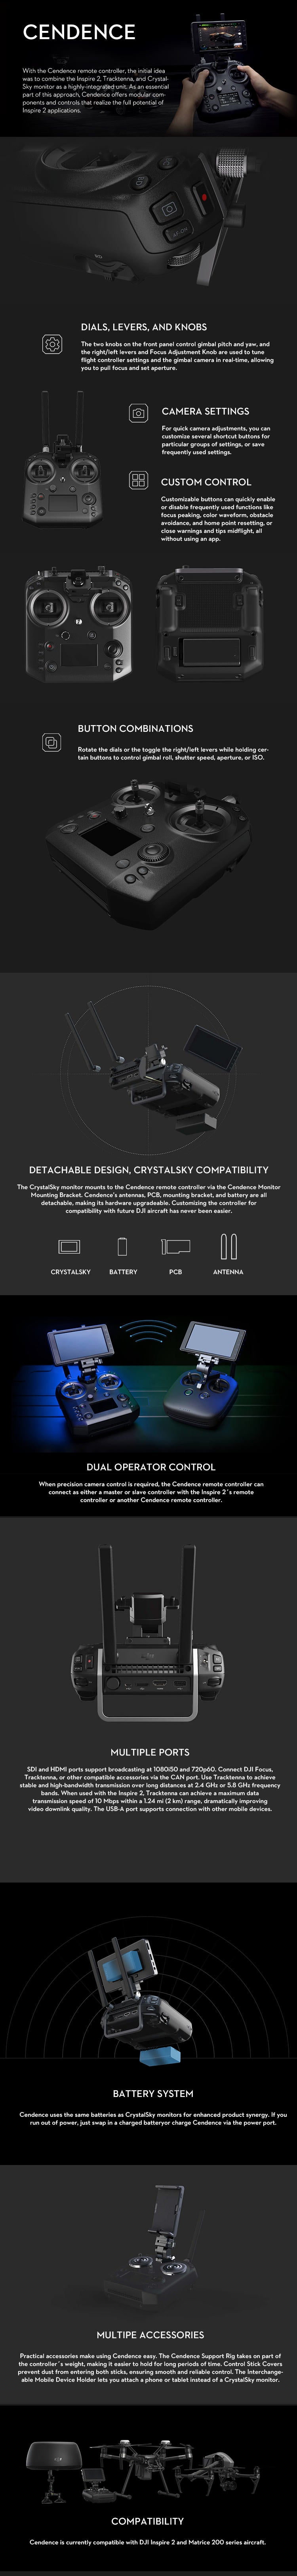 DJI Cendence Specs and Info